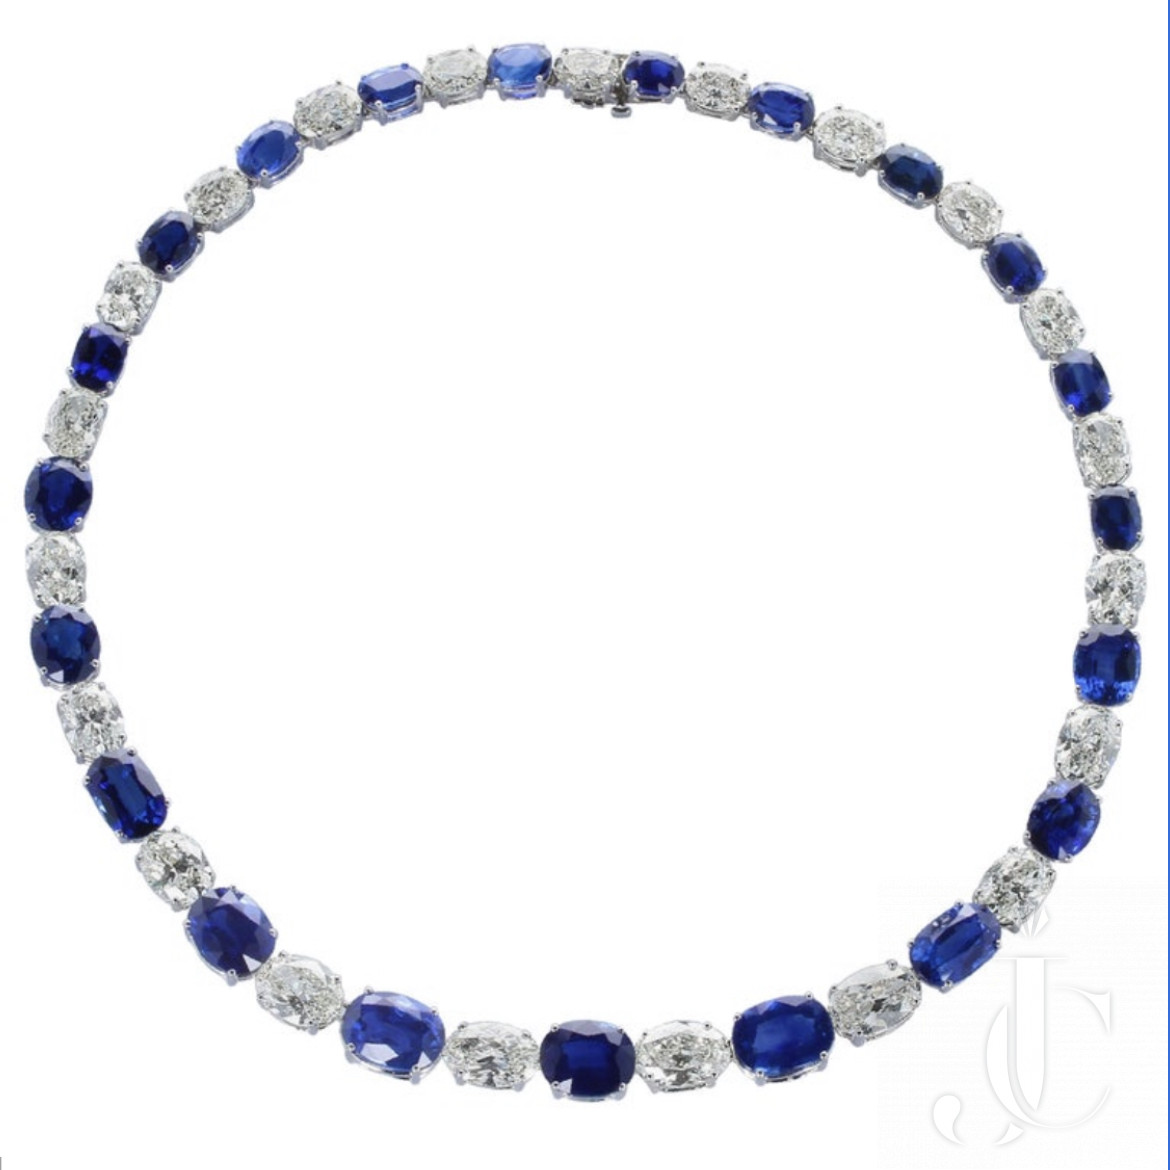 GIA Certified Large Oval Sapphire and Diamond Eternity Platinum Necklace